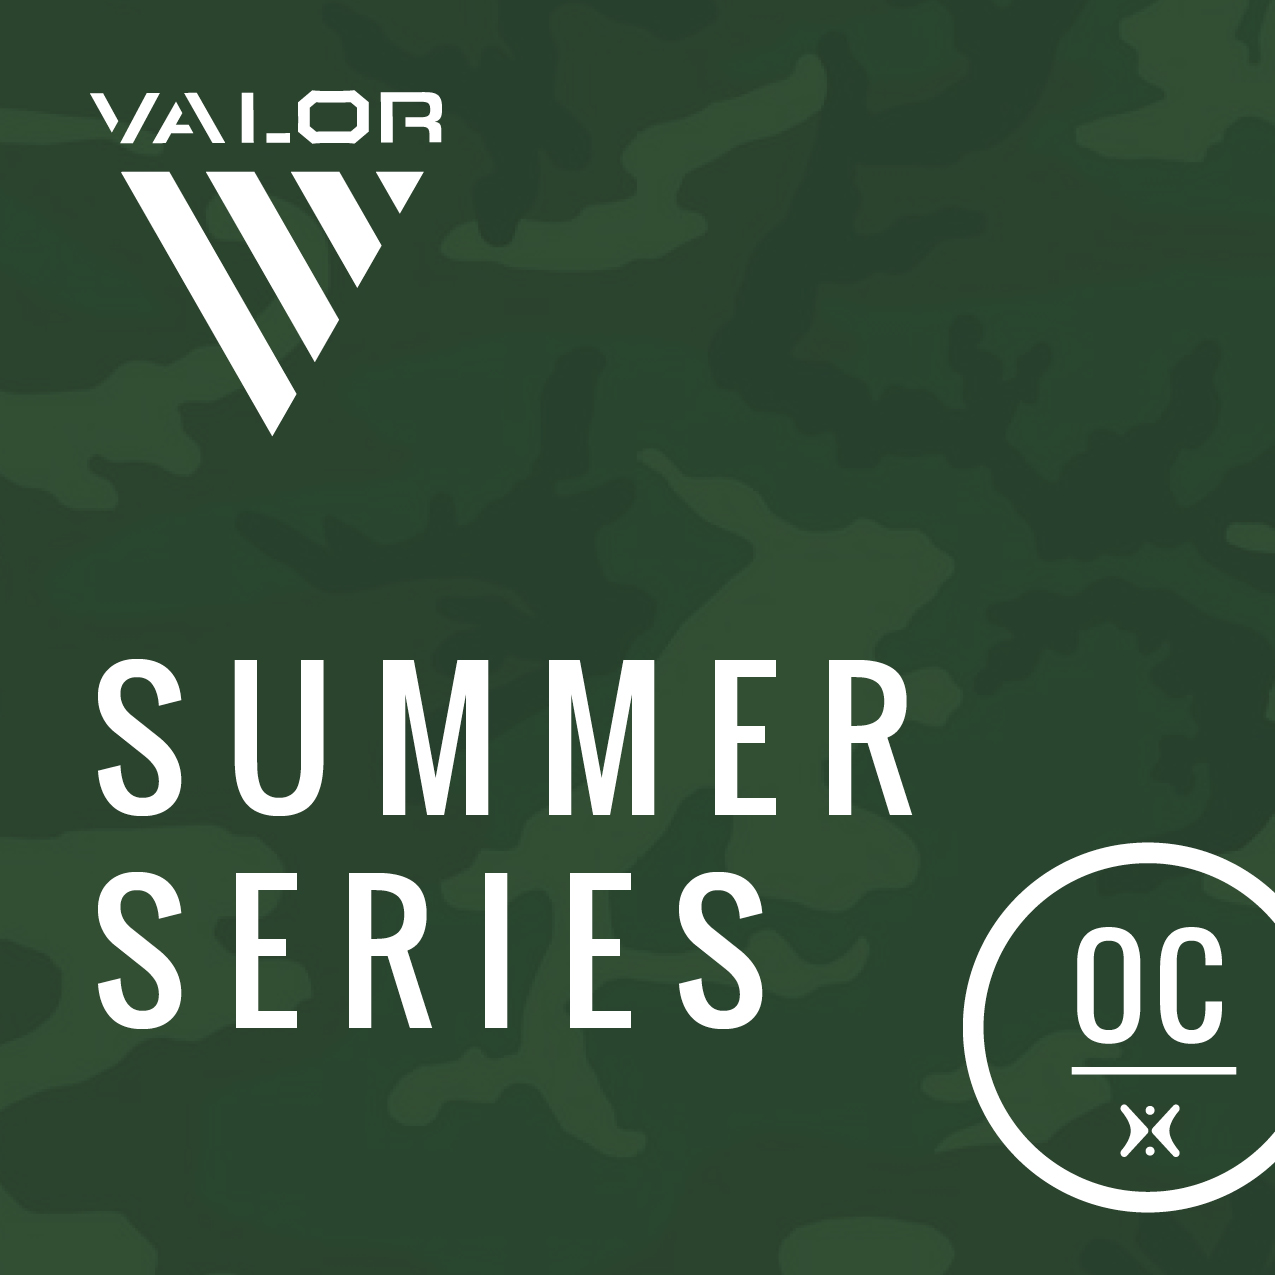 362405872_OC_ValorSummerSeries_DigitalBundle_THUMBNAIL_PROOF_1